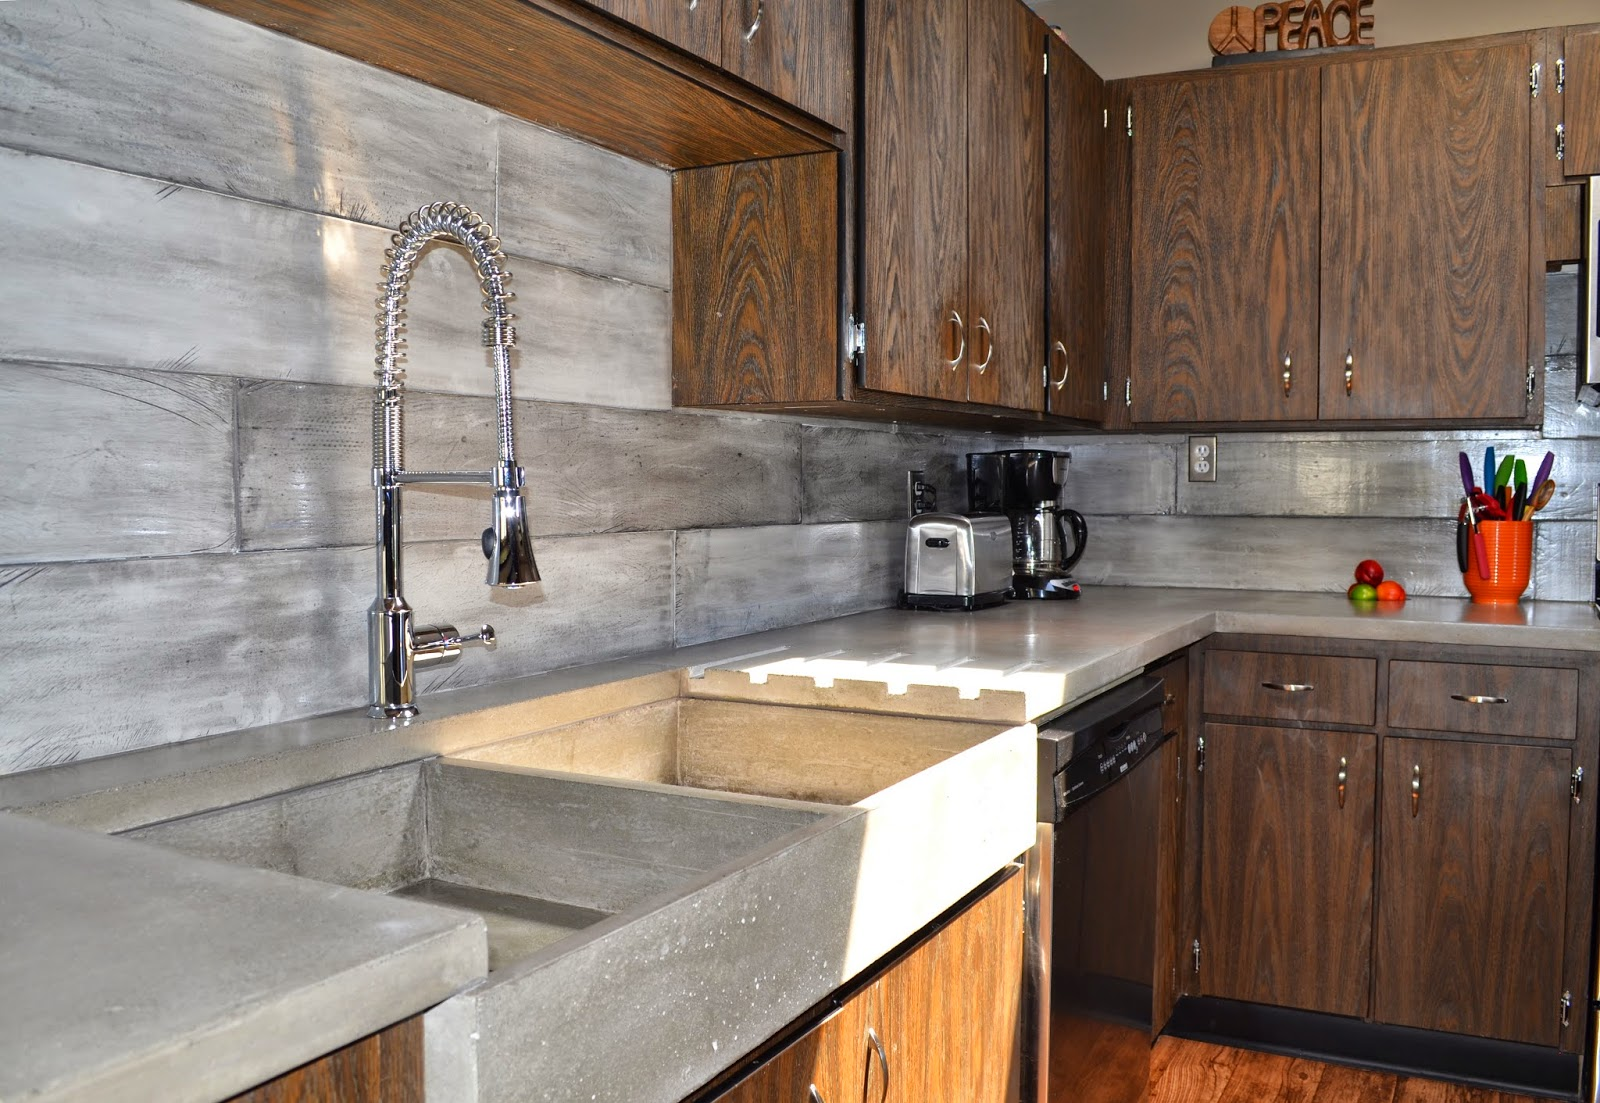 Waterfall Backsplash Part - 16: Andu0027s Let Talk About This Brilliant Innovation. With Concrete We Can  Literally Imprint Anything Or Customize In Any Way... Like This Built-in  Draining Board ...